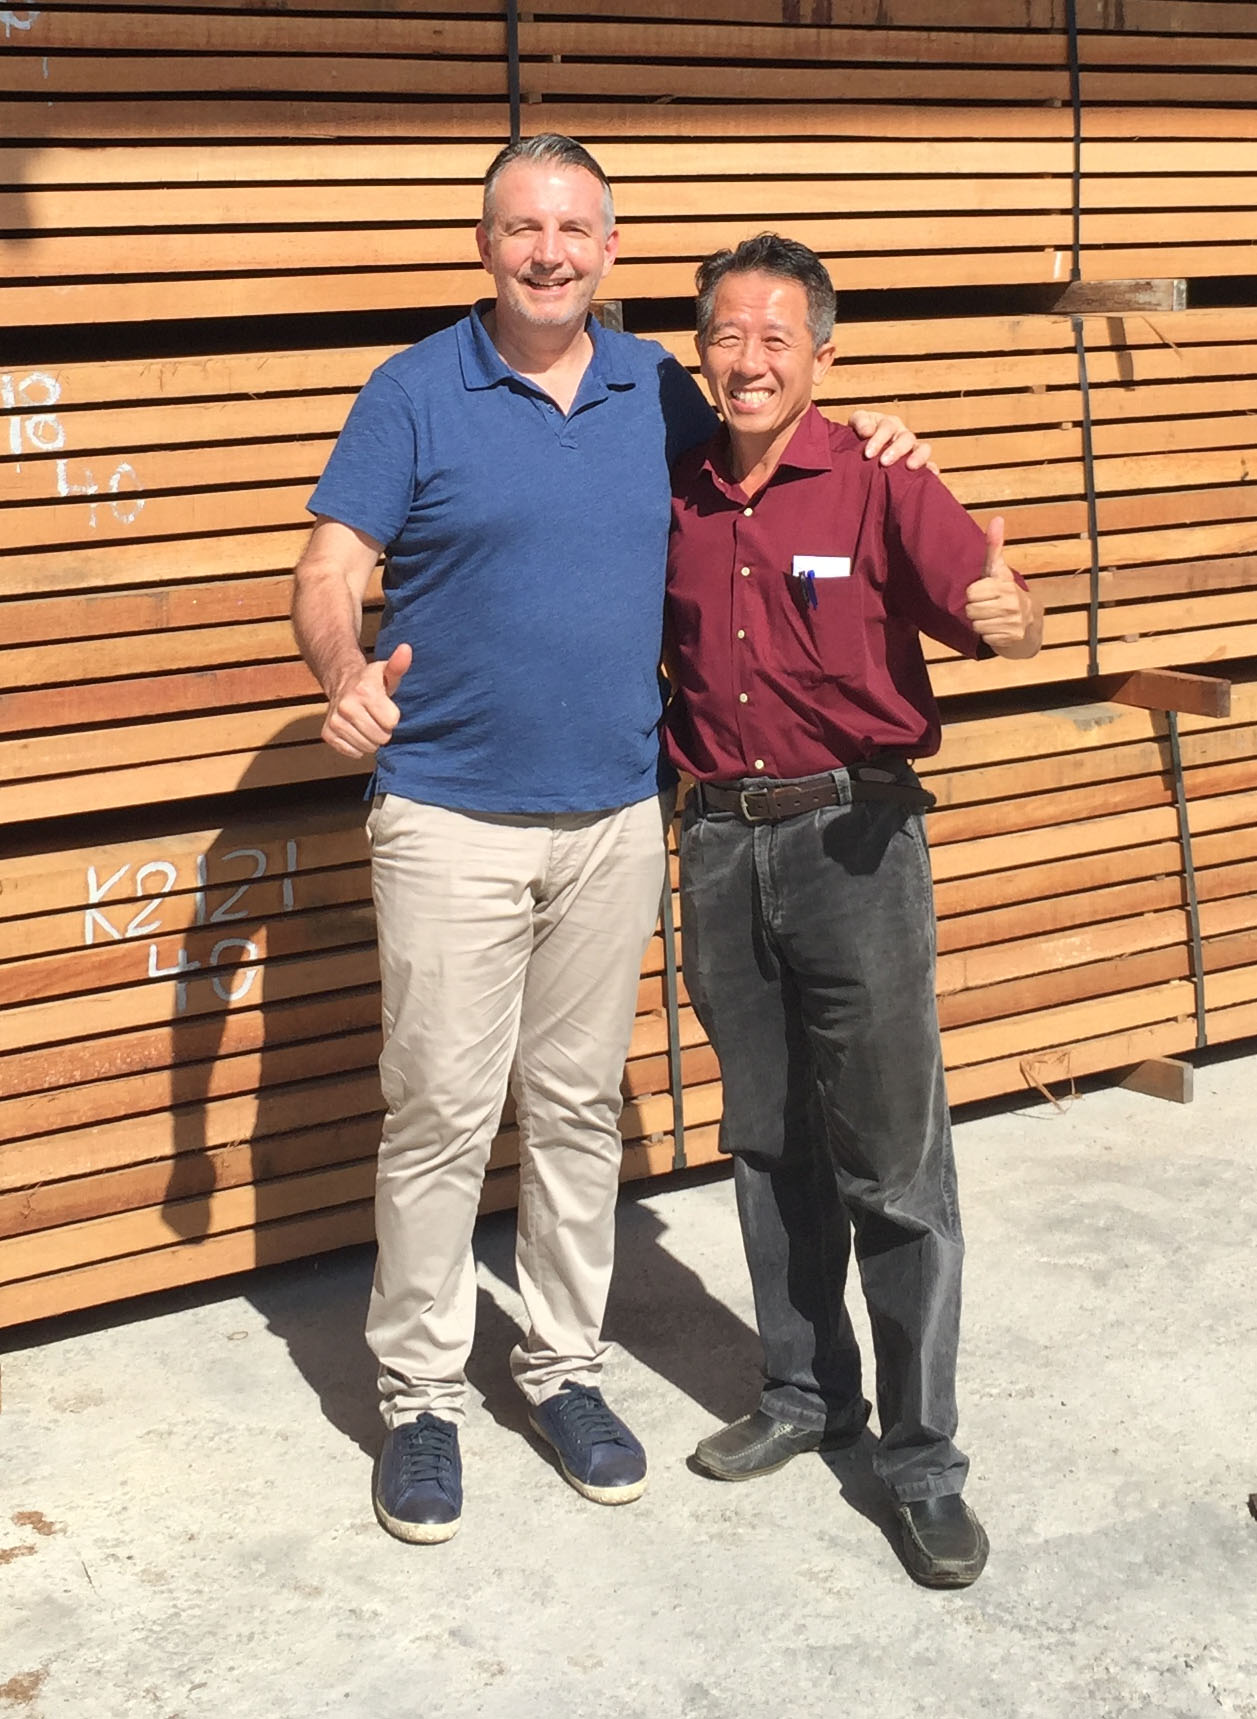 Bill Christou and Supplier - Nova USA Wood Products - Partner